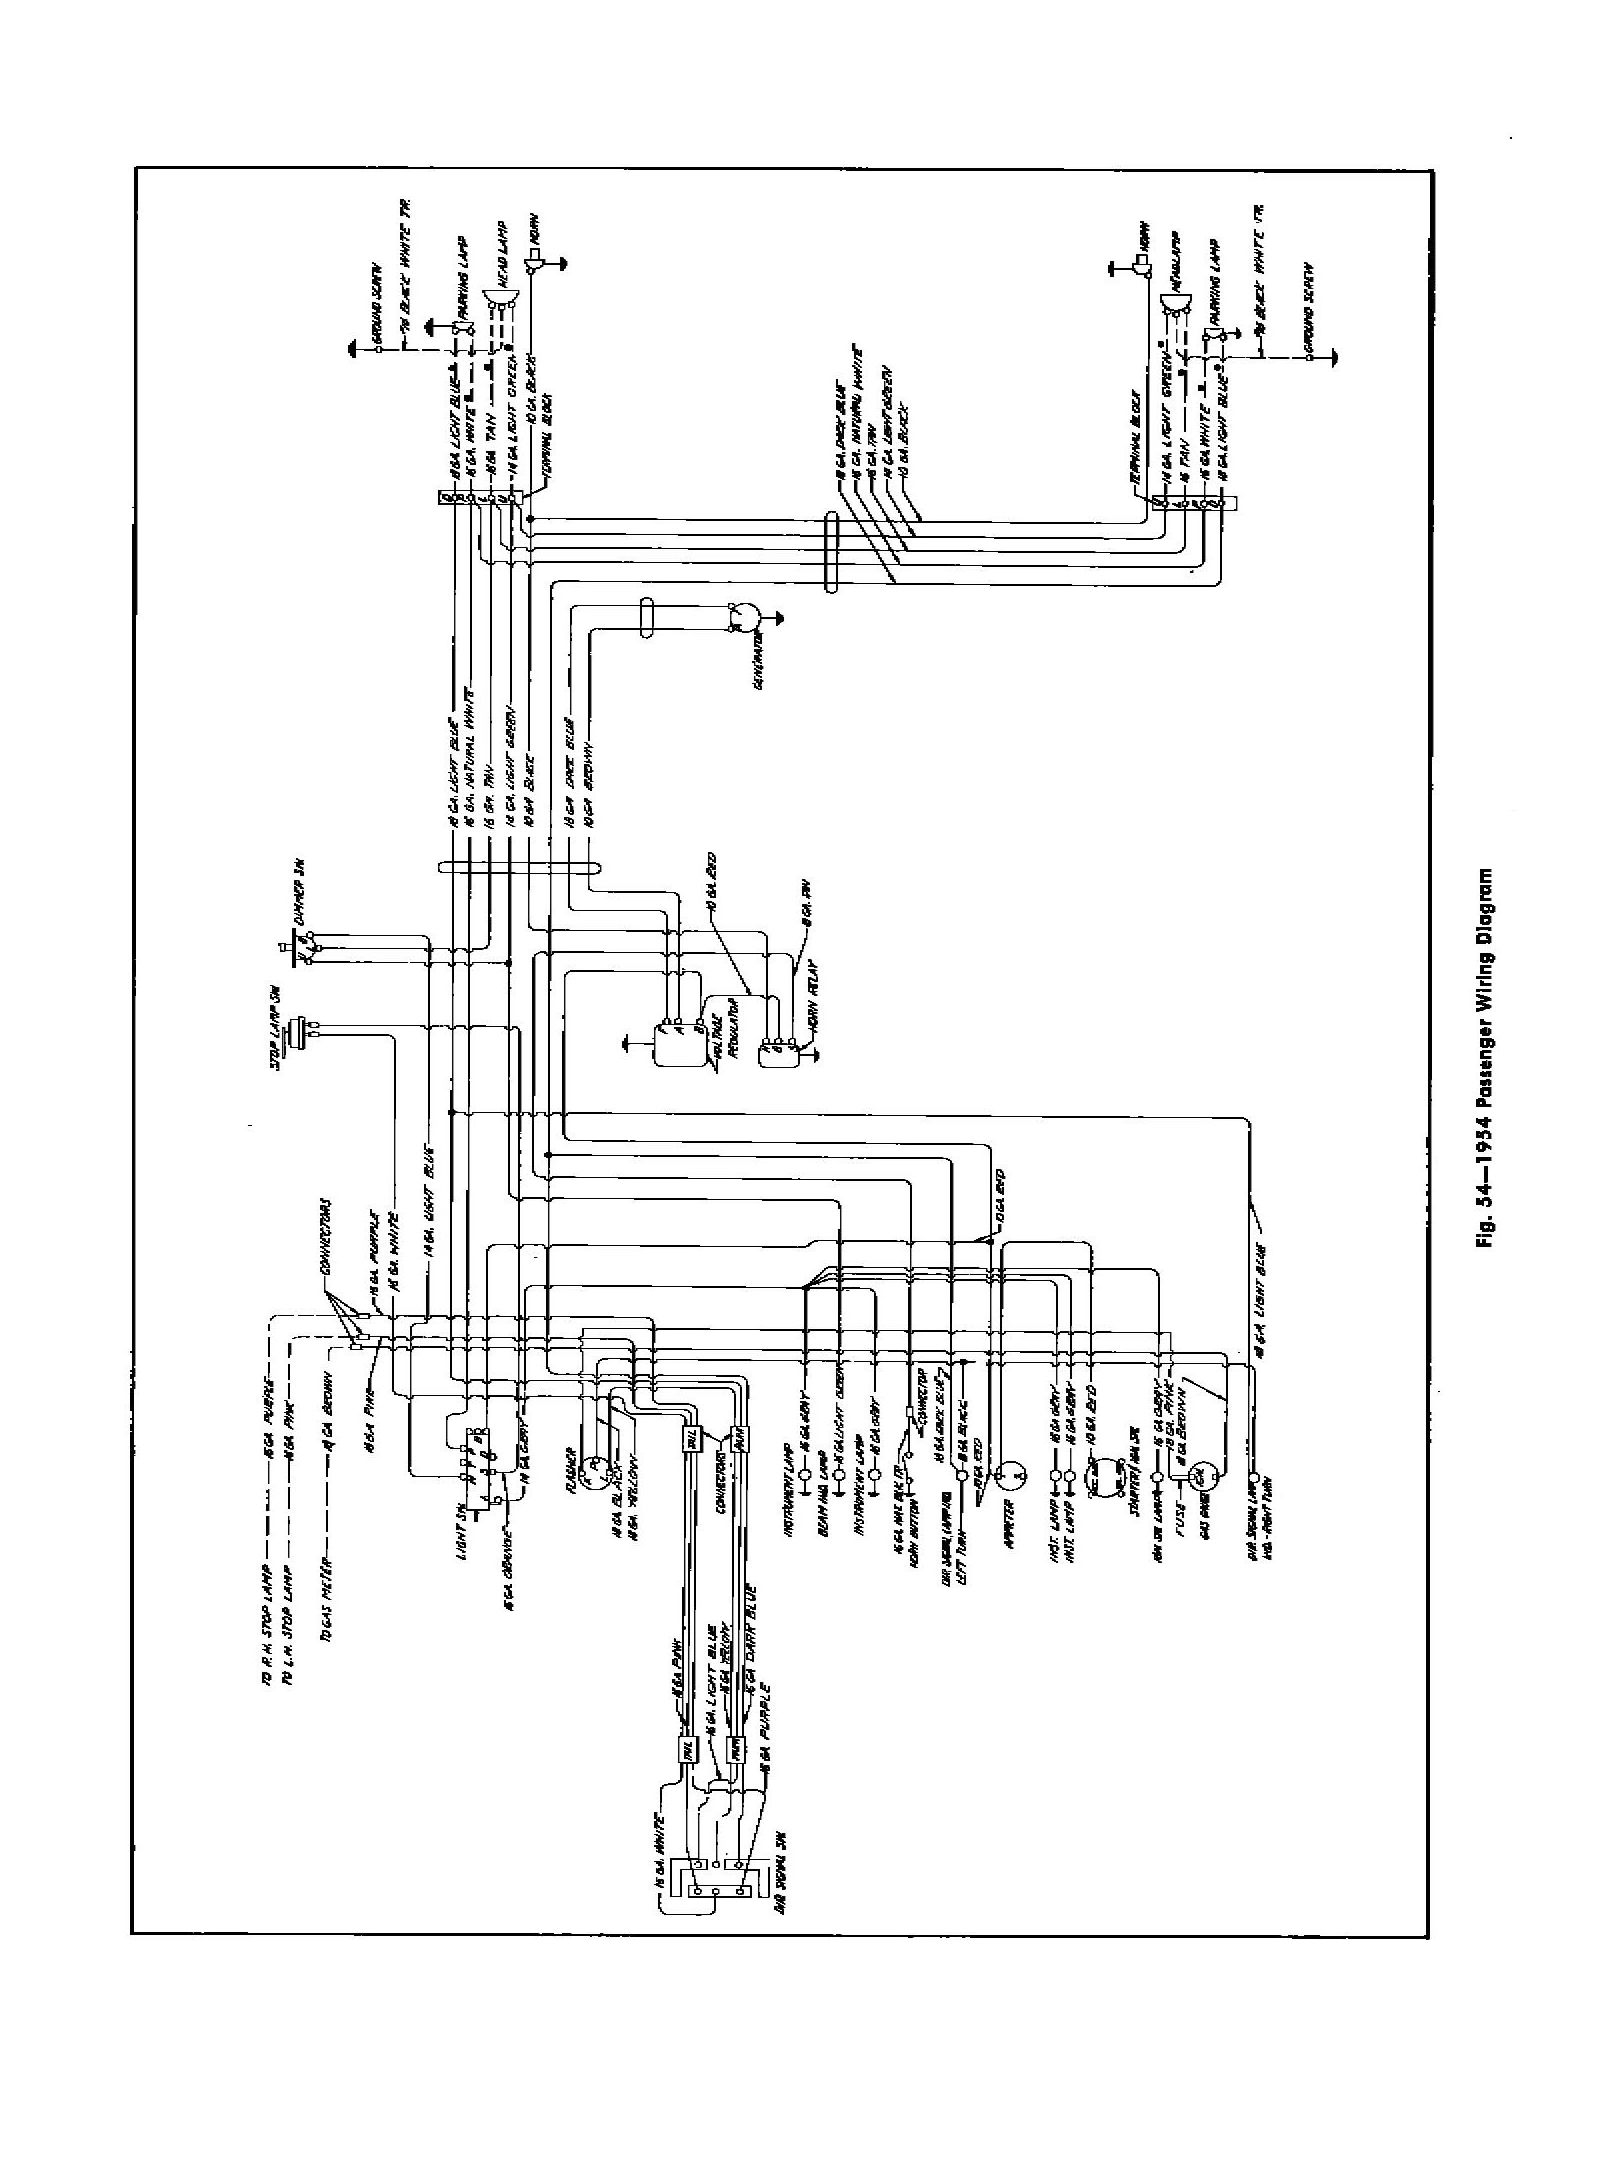 Wiring Diagram For 1949 Ford Library Custom 1954 Passenger Car Chevy Diagrams